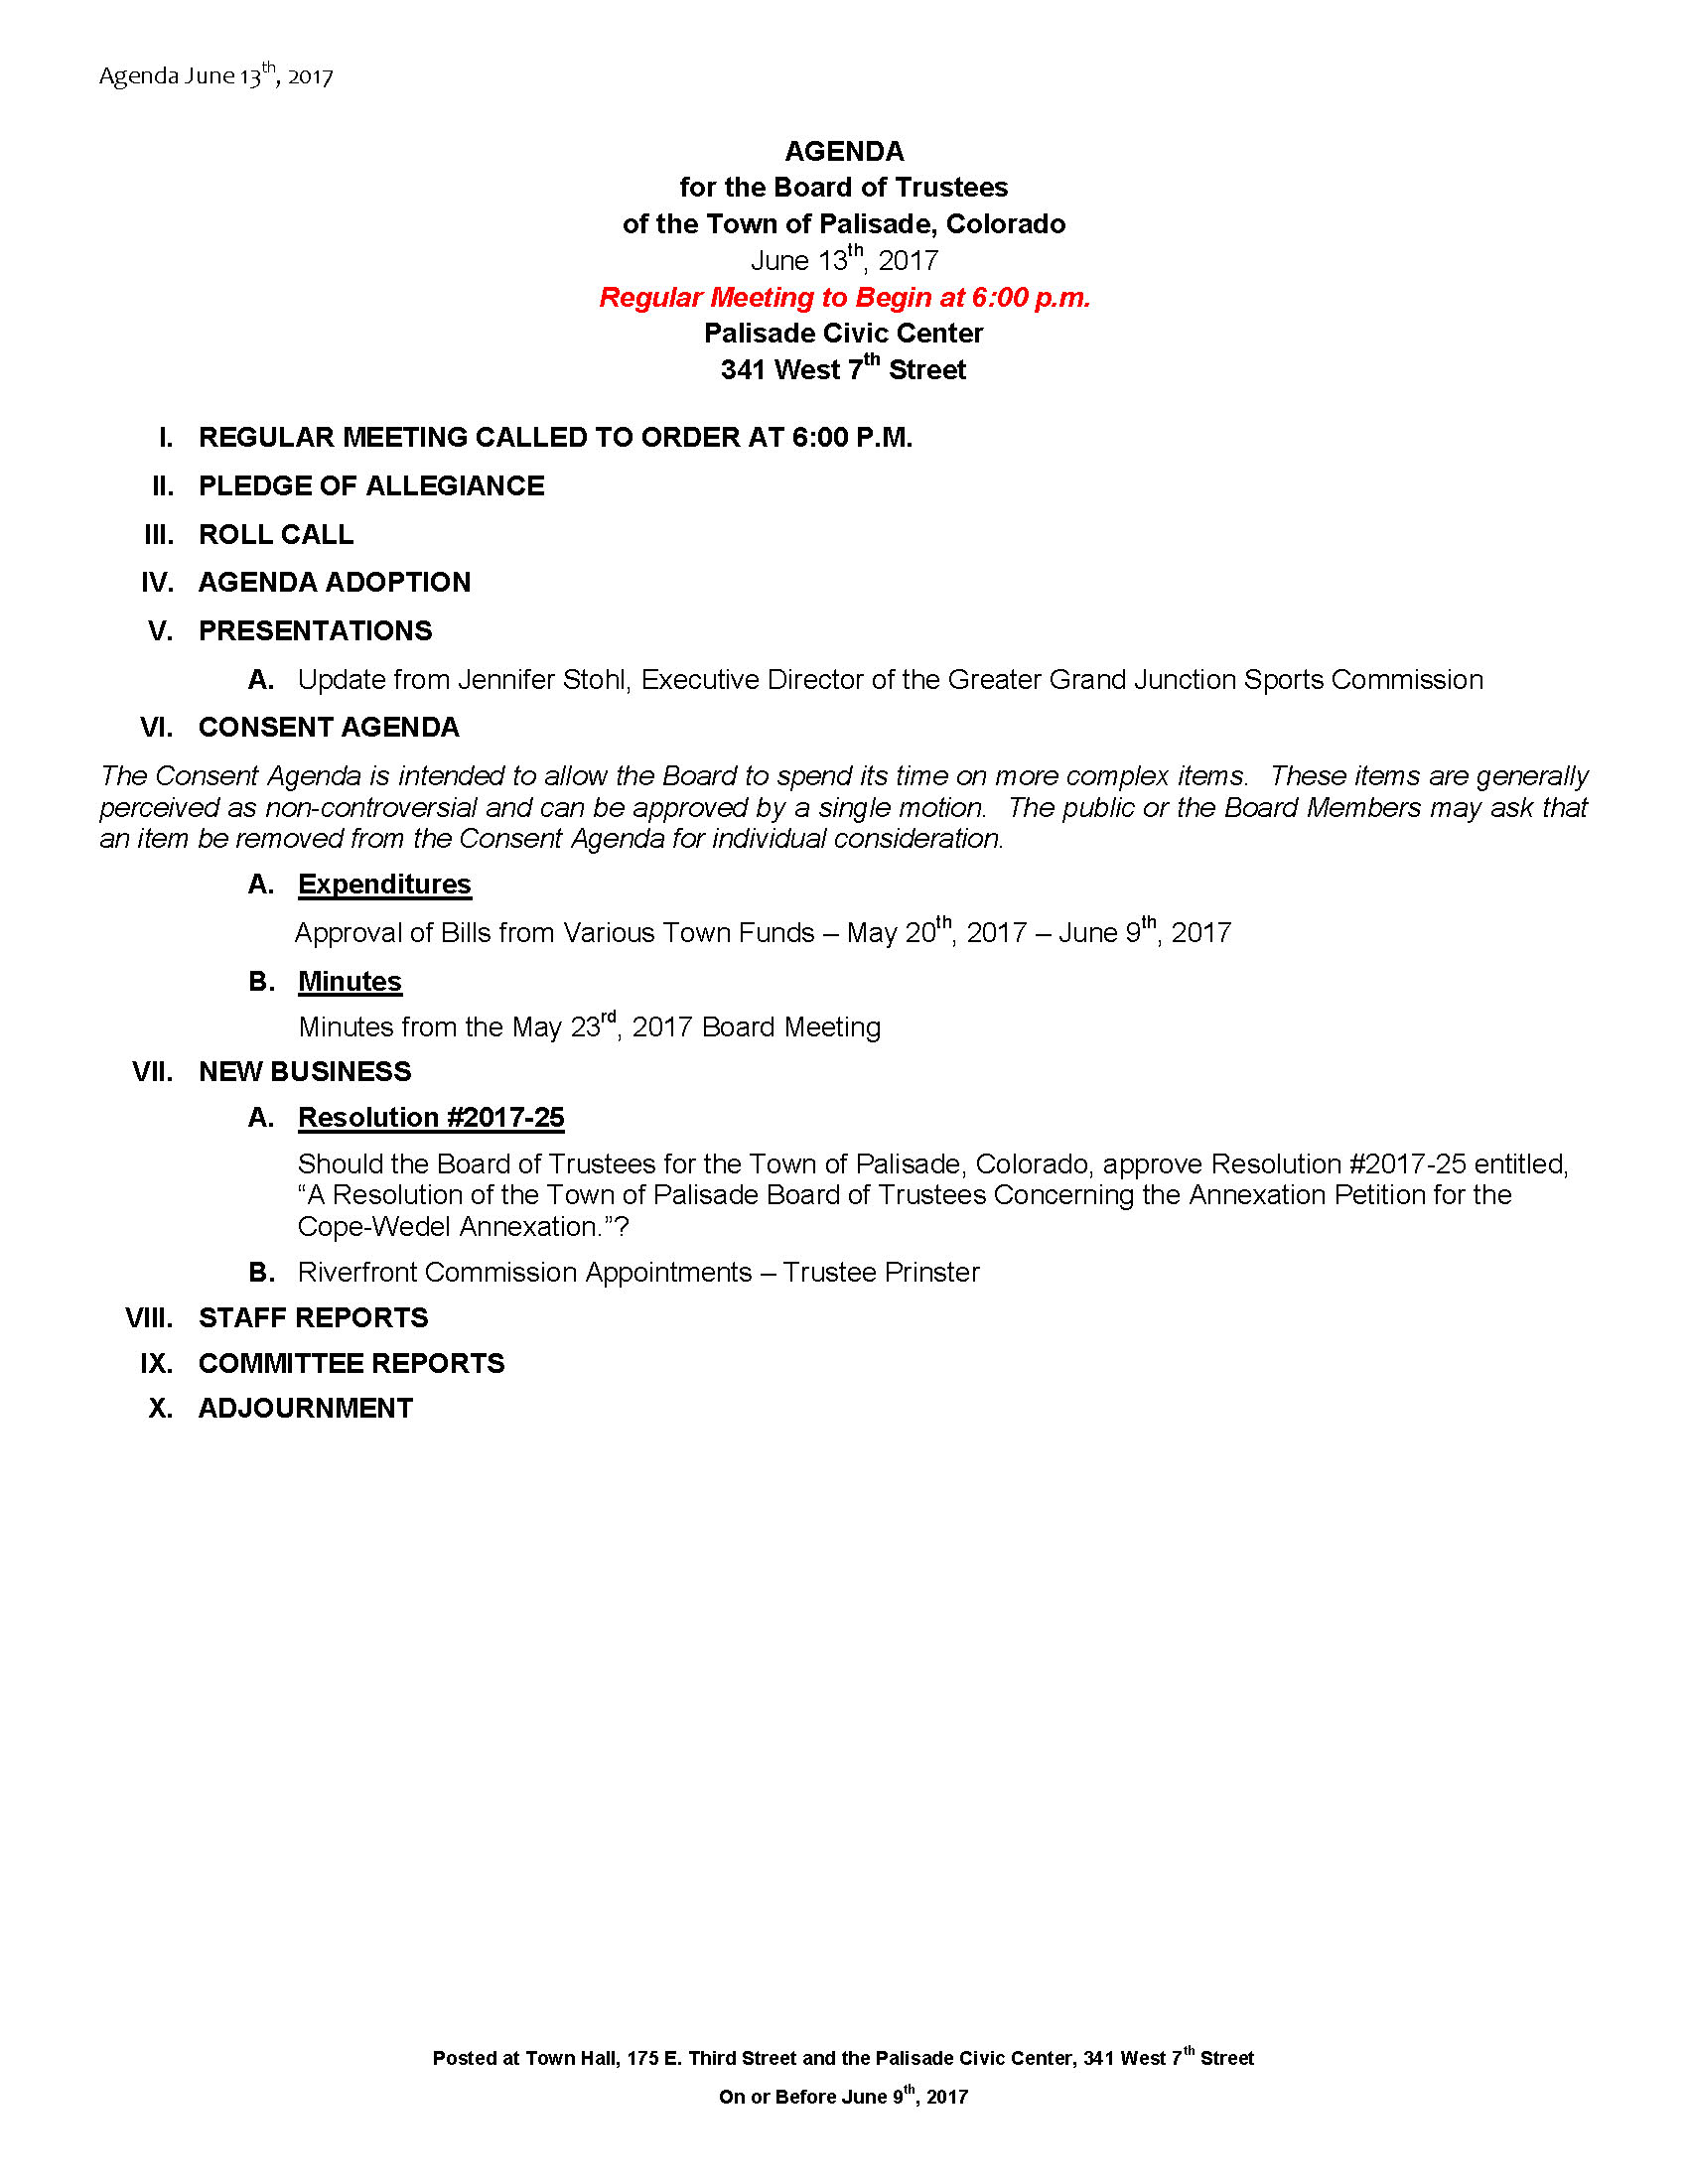 June 13th 2017 Board Meeting Agenda